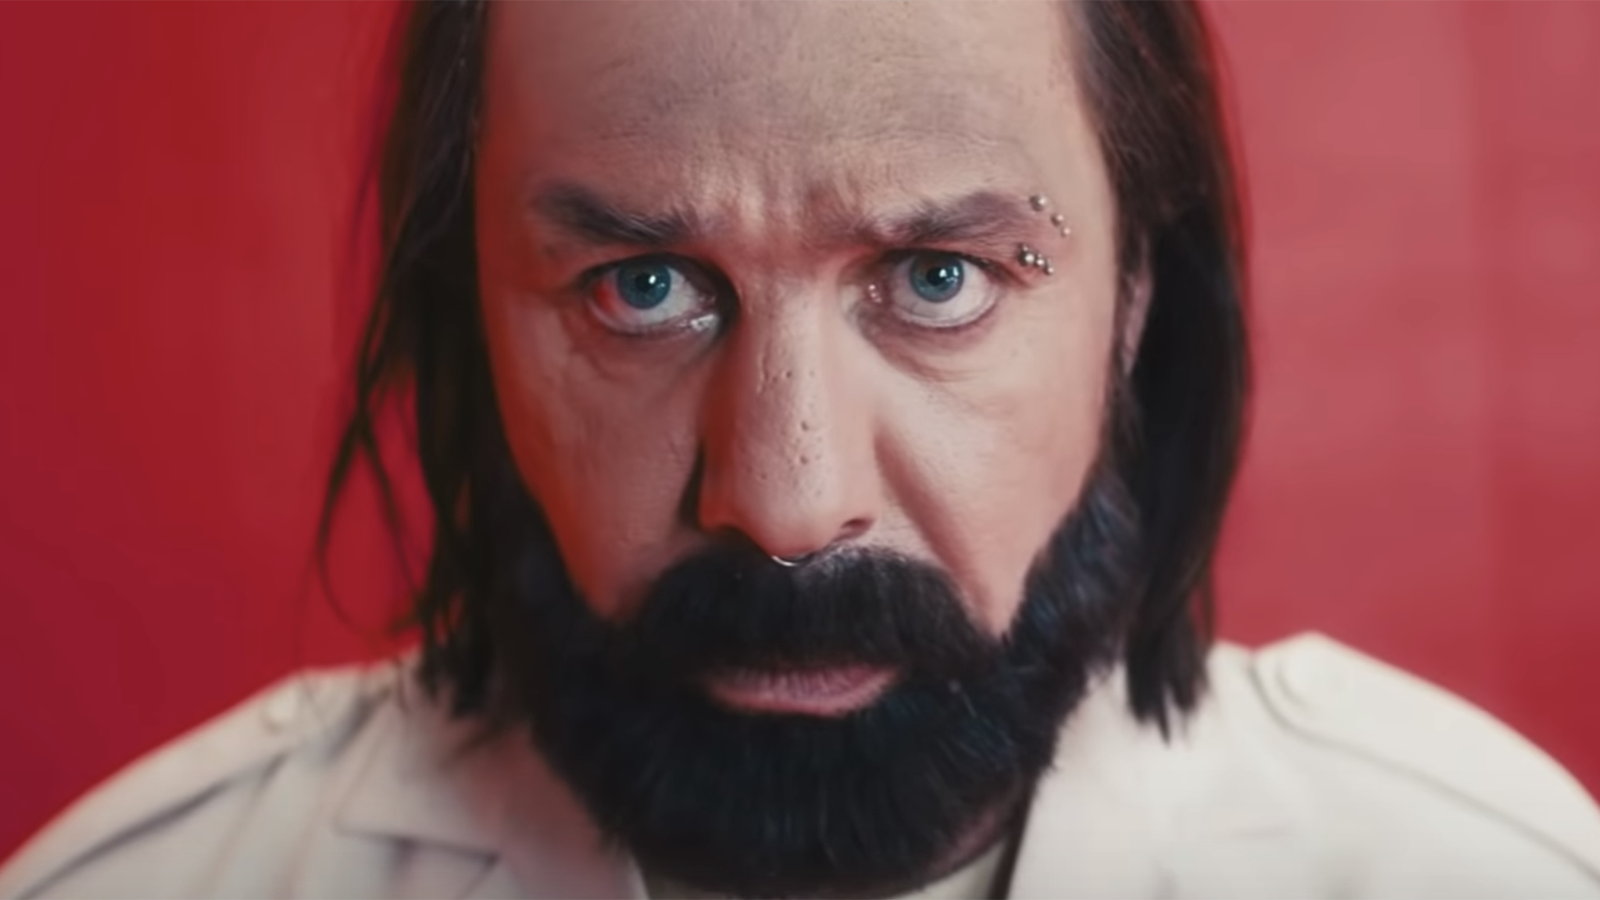 """See Till Lindemann Face Off With Peter Stormare in Insane New """"Steh Auf"""" Video"""